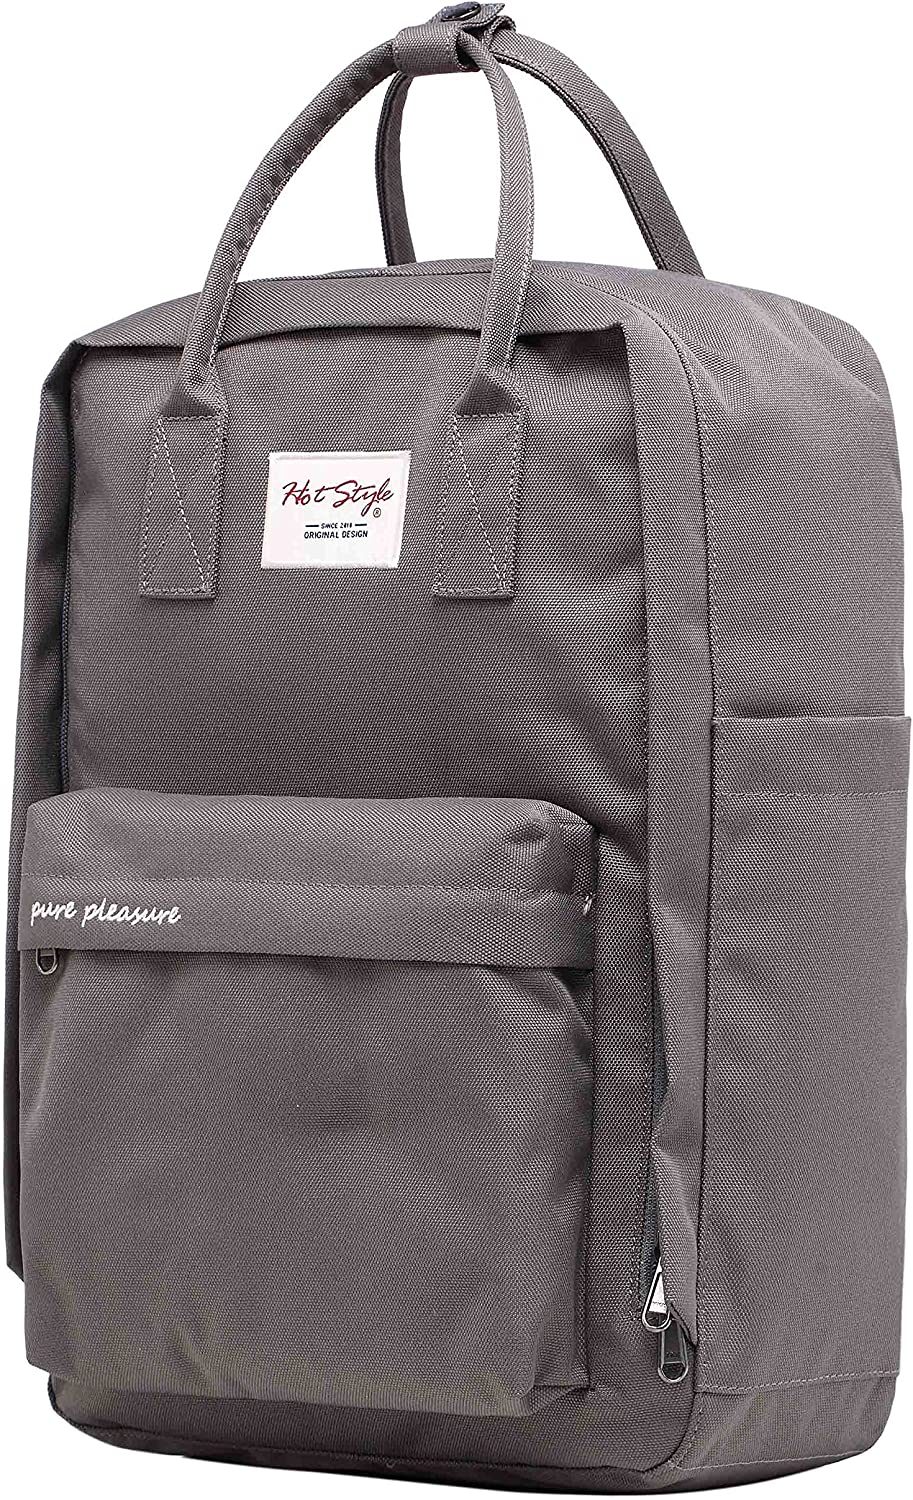 Pure Pleasure College Backpack Travel Handbag   16.5 x11.1 x4.7    Holds 15.6in Laptop